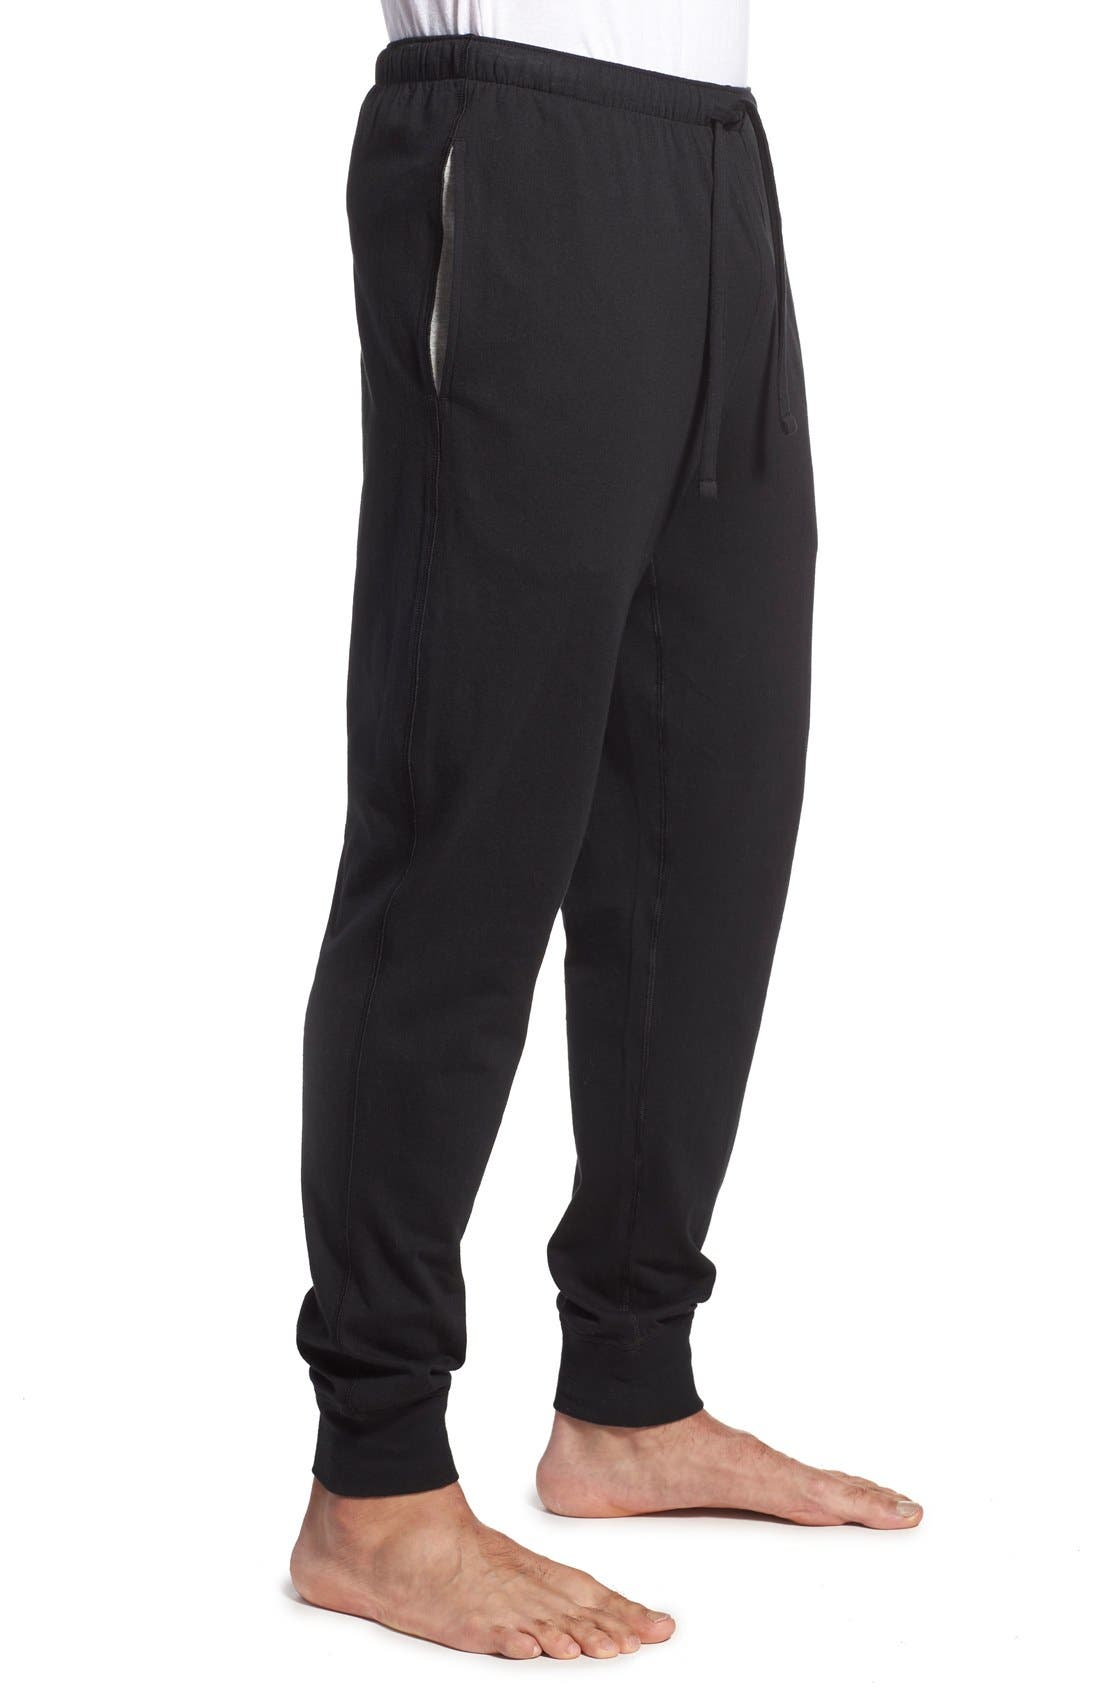 Relaxed Fit Cotton Knit Lounge Jogger Pants,                             Alternate thumbnail 4, color,                             BLACK